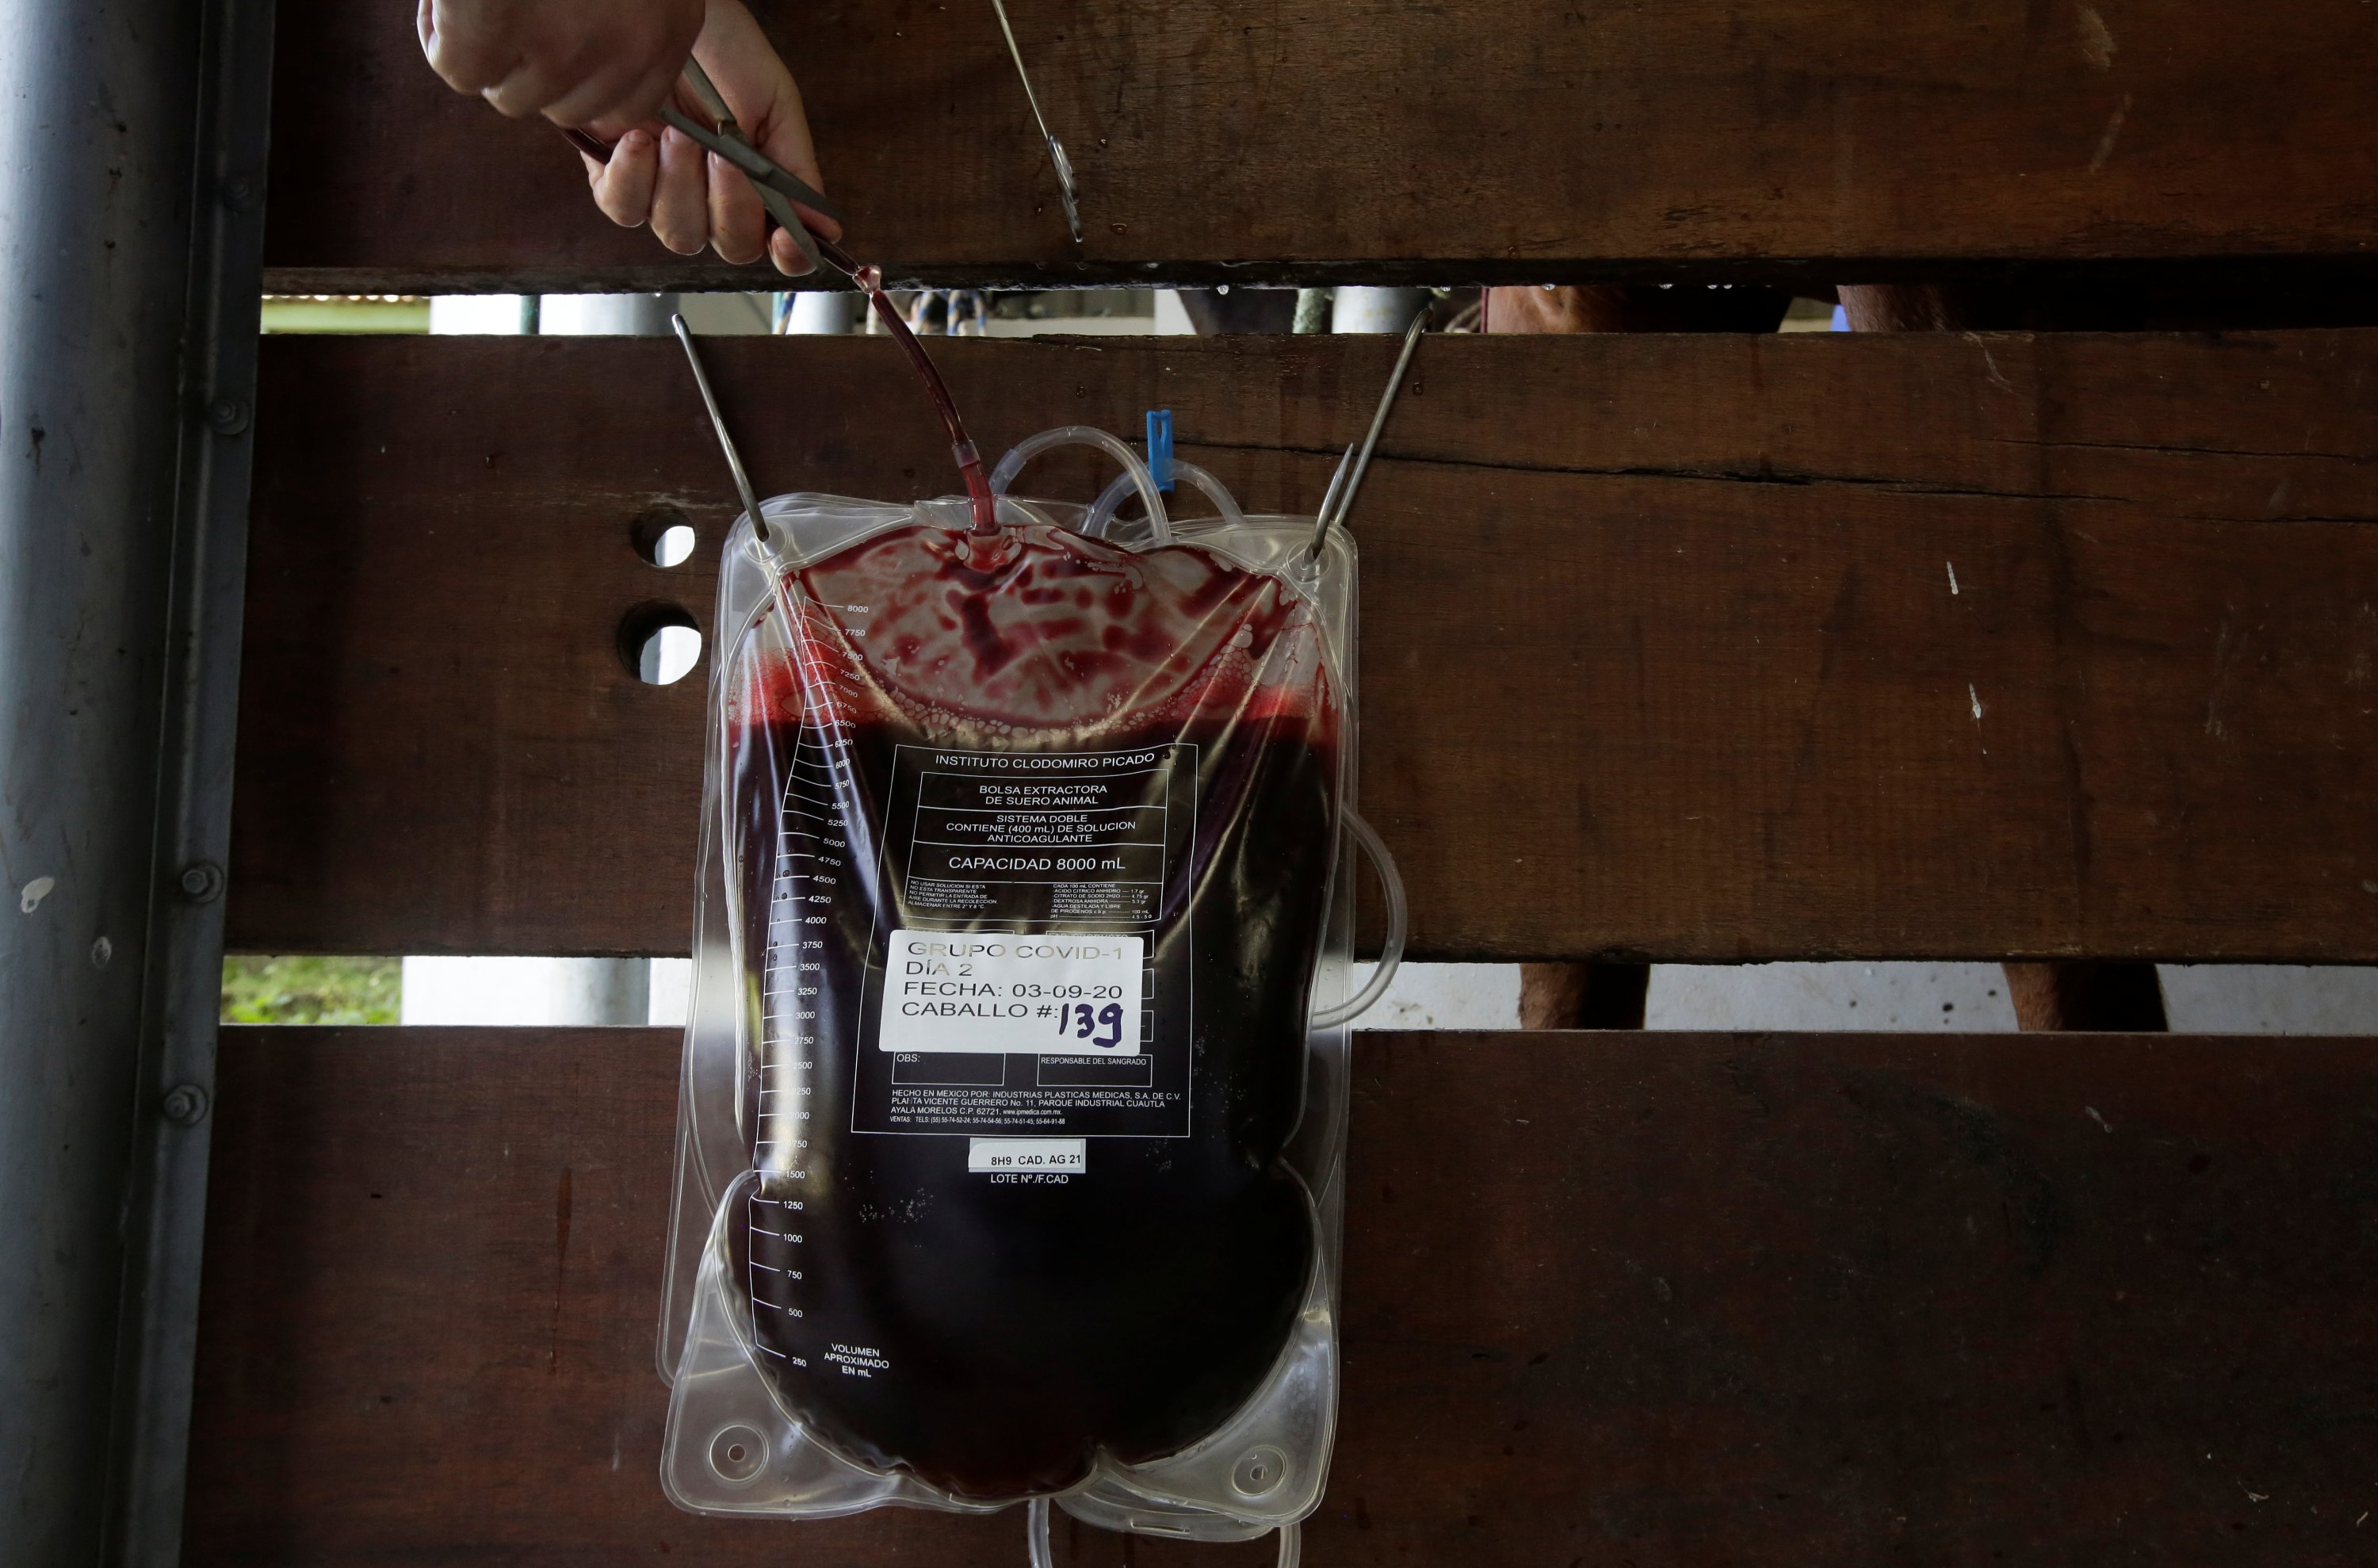 A worker cuts the probe after drawing blood from a horse for a trial to produce a treatment for COVID-19 in San Jose, Costa Rica, Aug. 3, 2020. (REUTERS Photo)